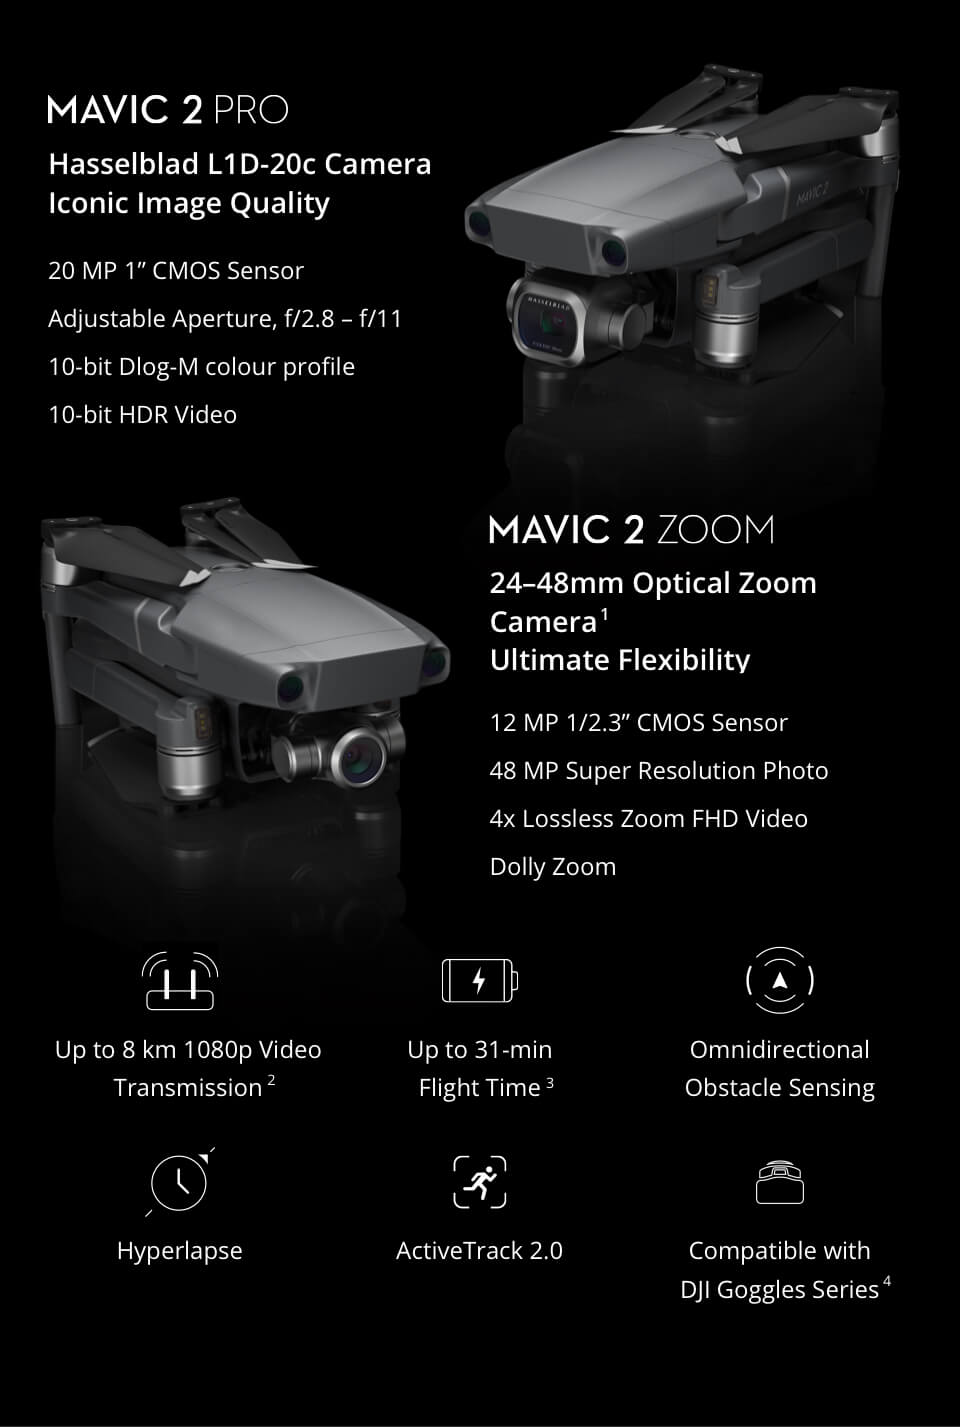 DJI Mavic 2 description